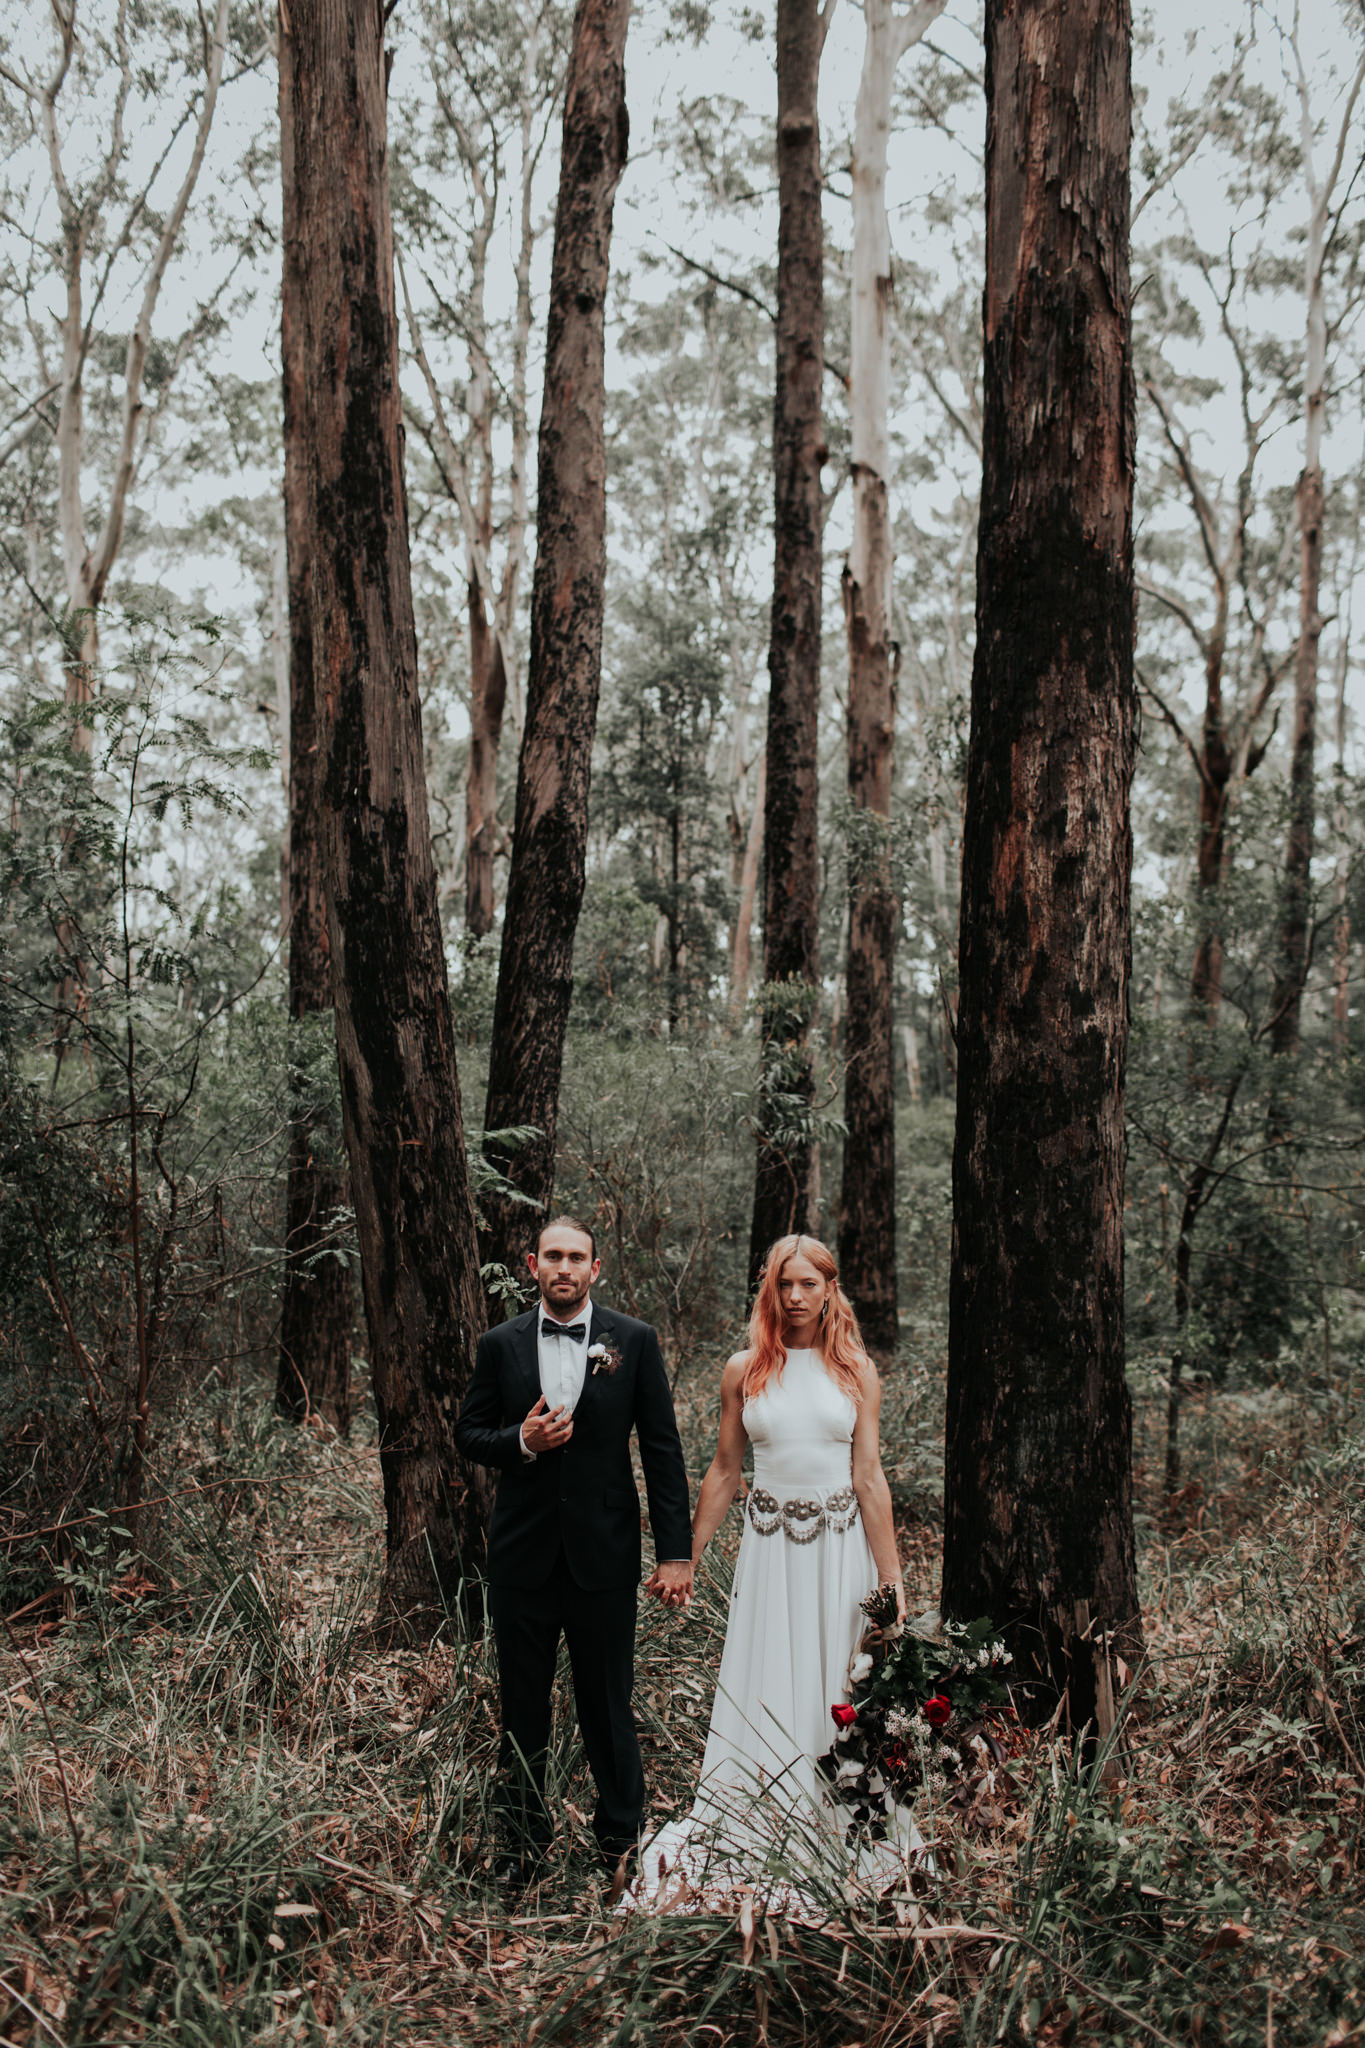 Forest Elopement Fox & Kin Australian Destination Wedding Photographer Coffs Harbour Byron Bay Port Macquarie Grafton